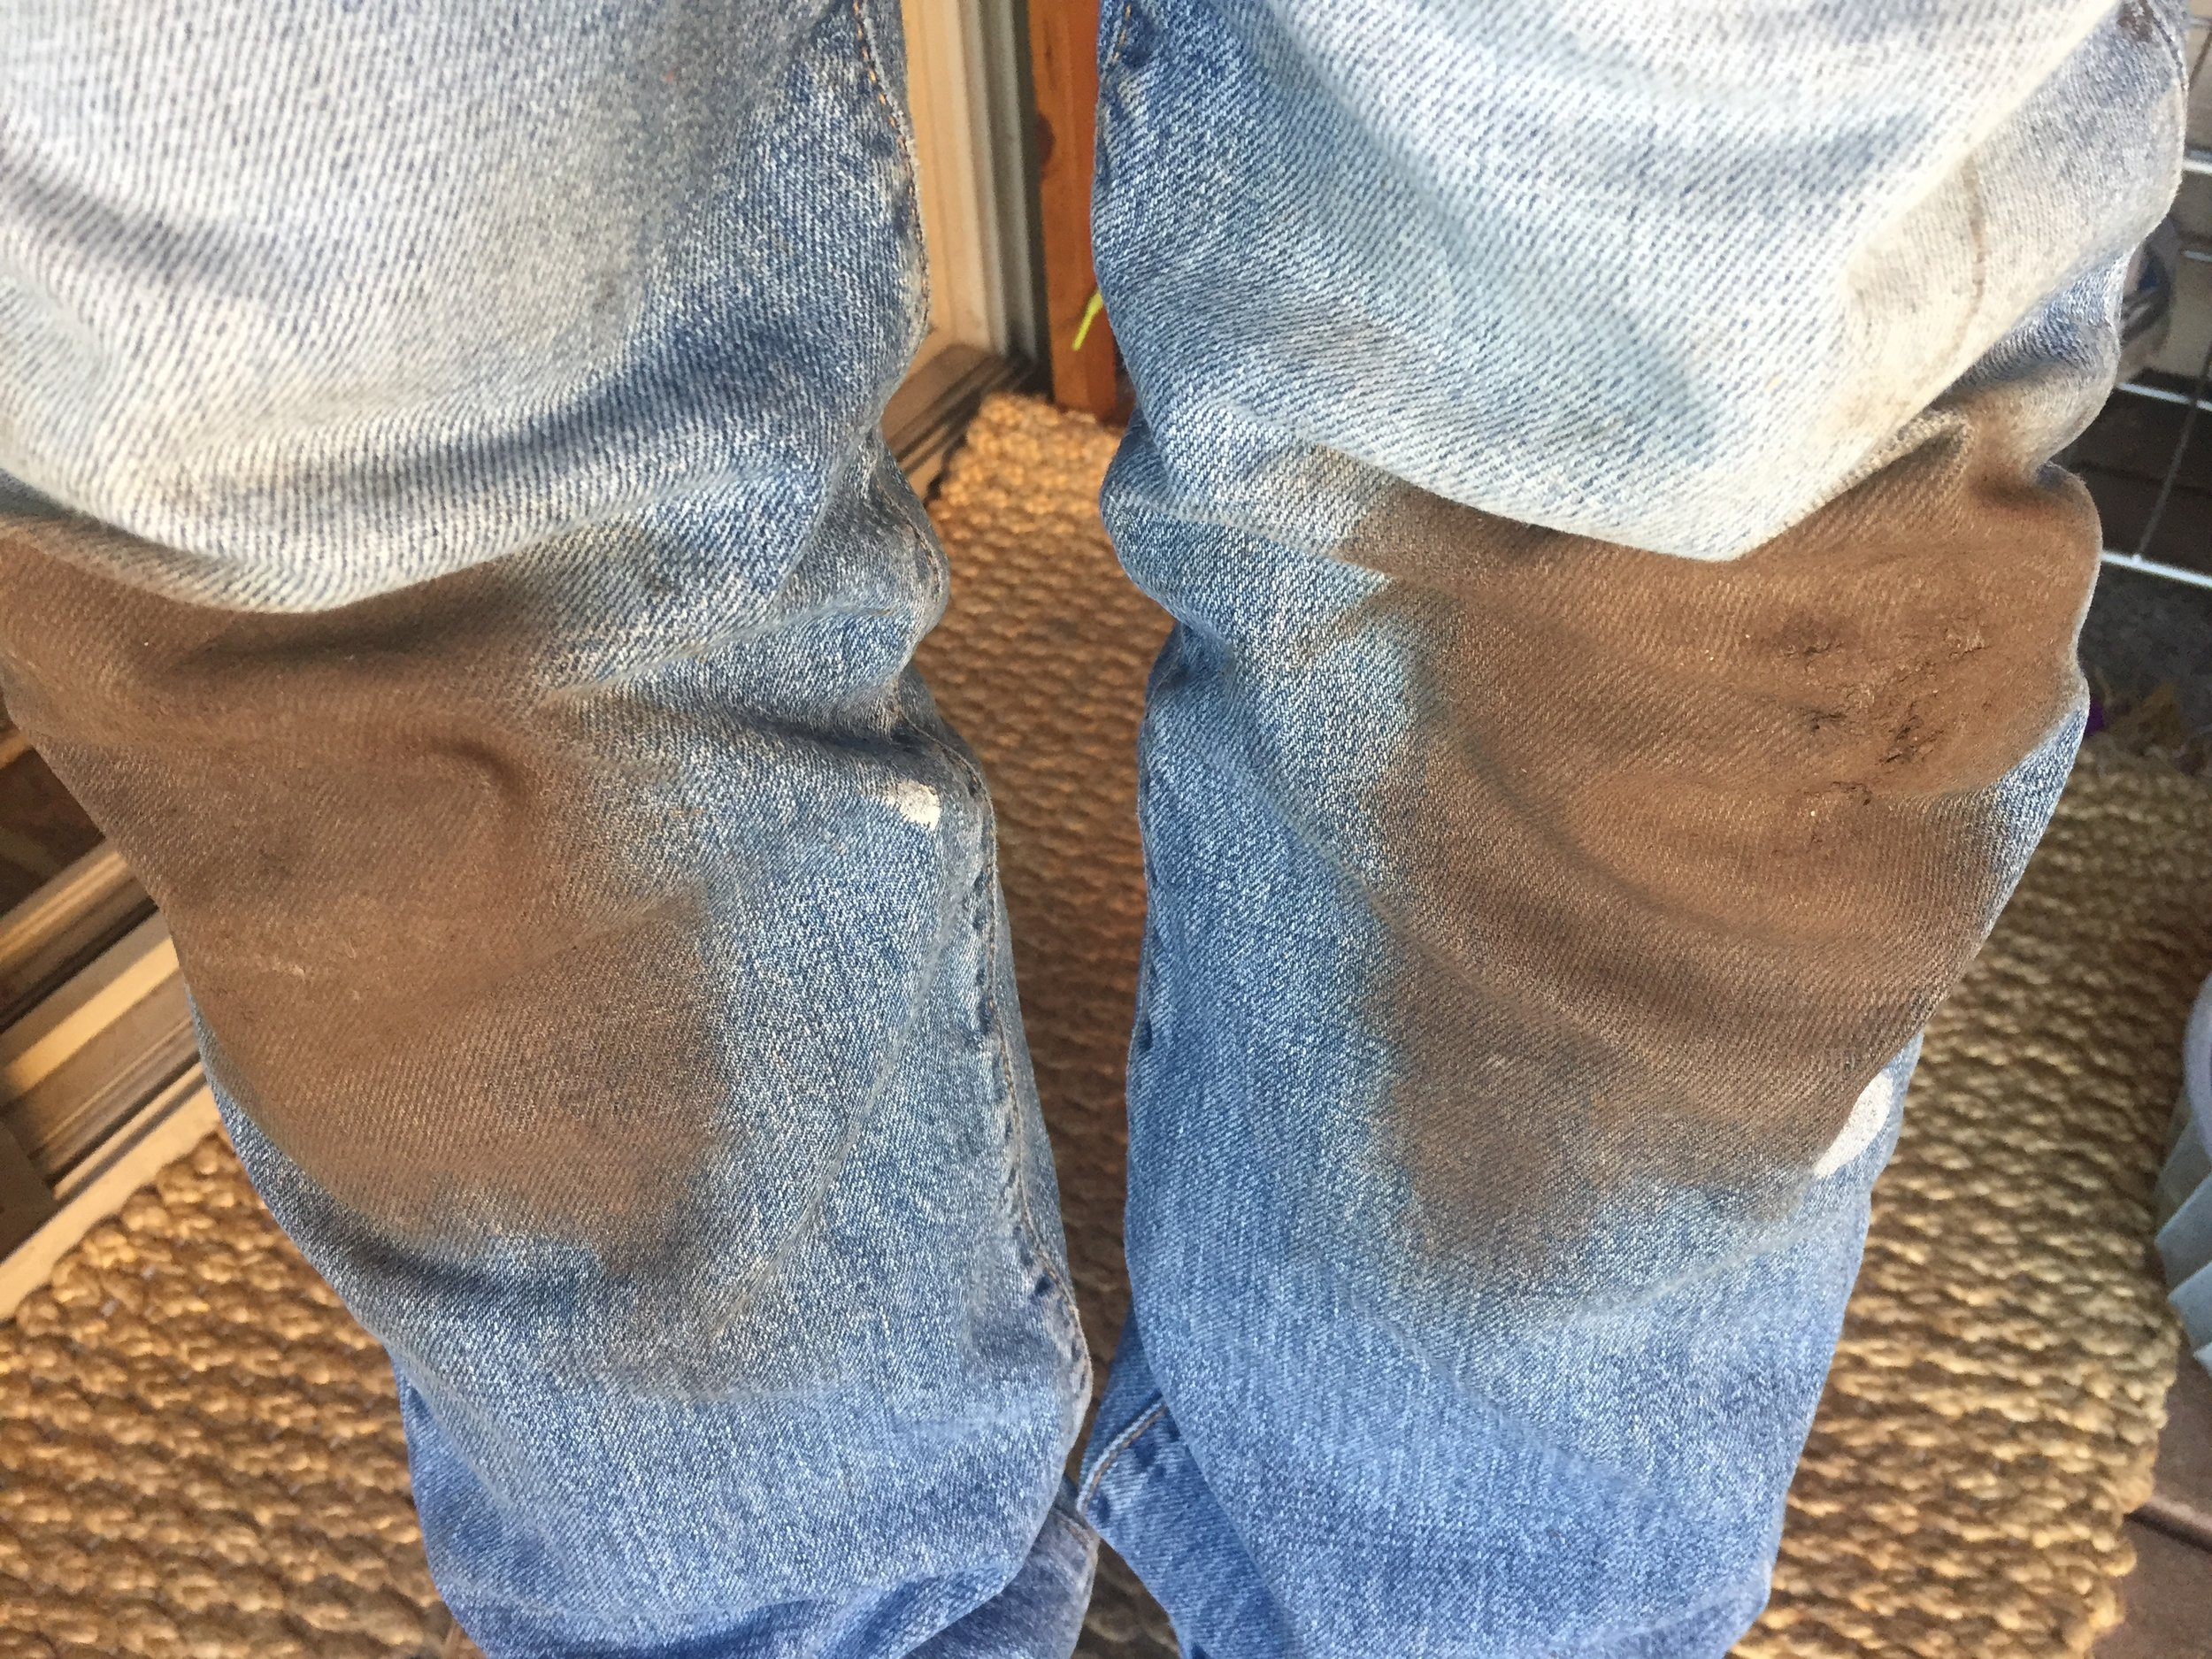 Dirty knees are always the first sign of spring!